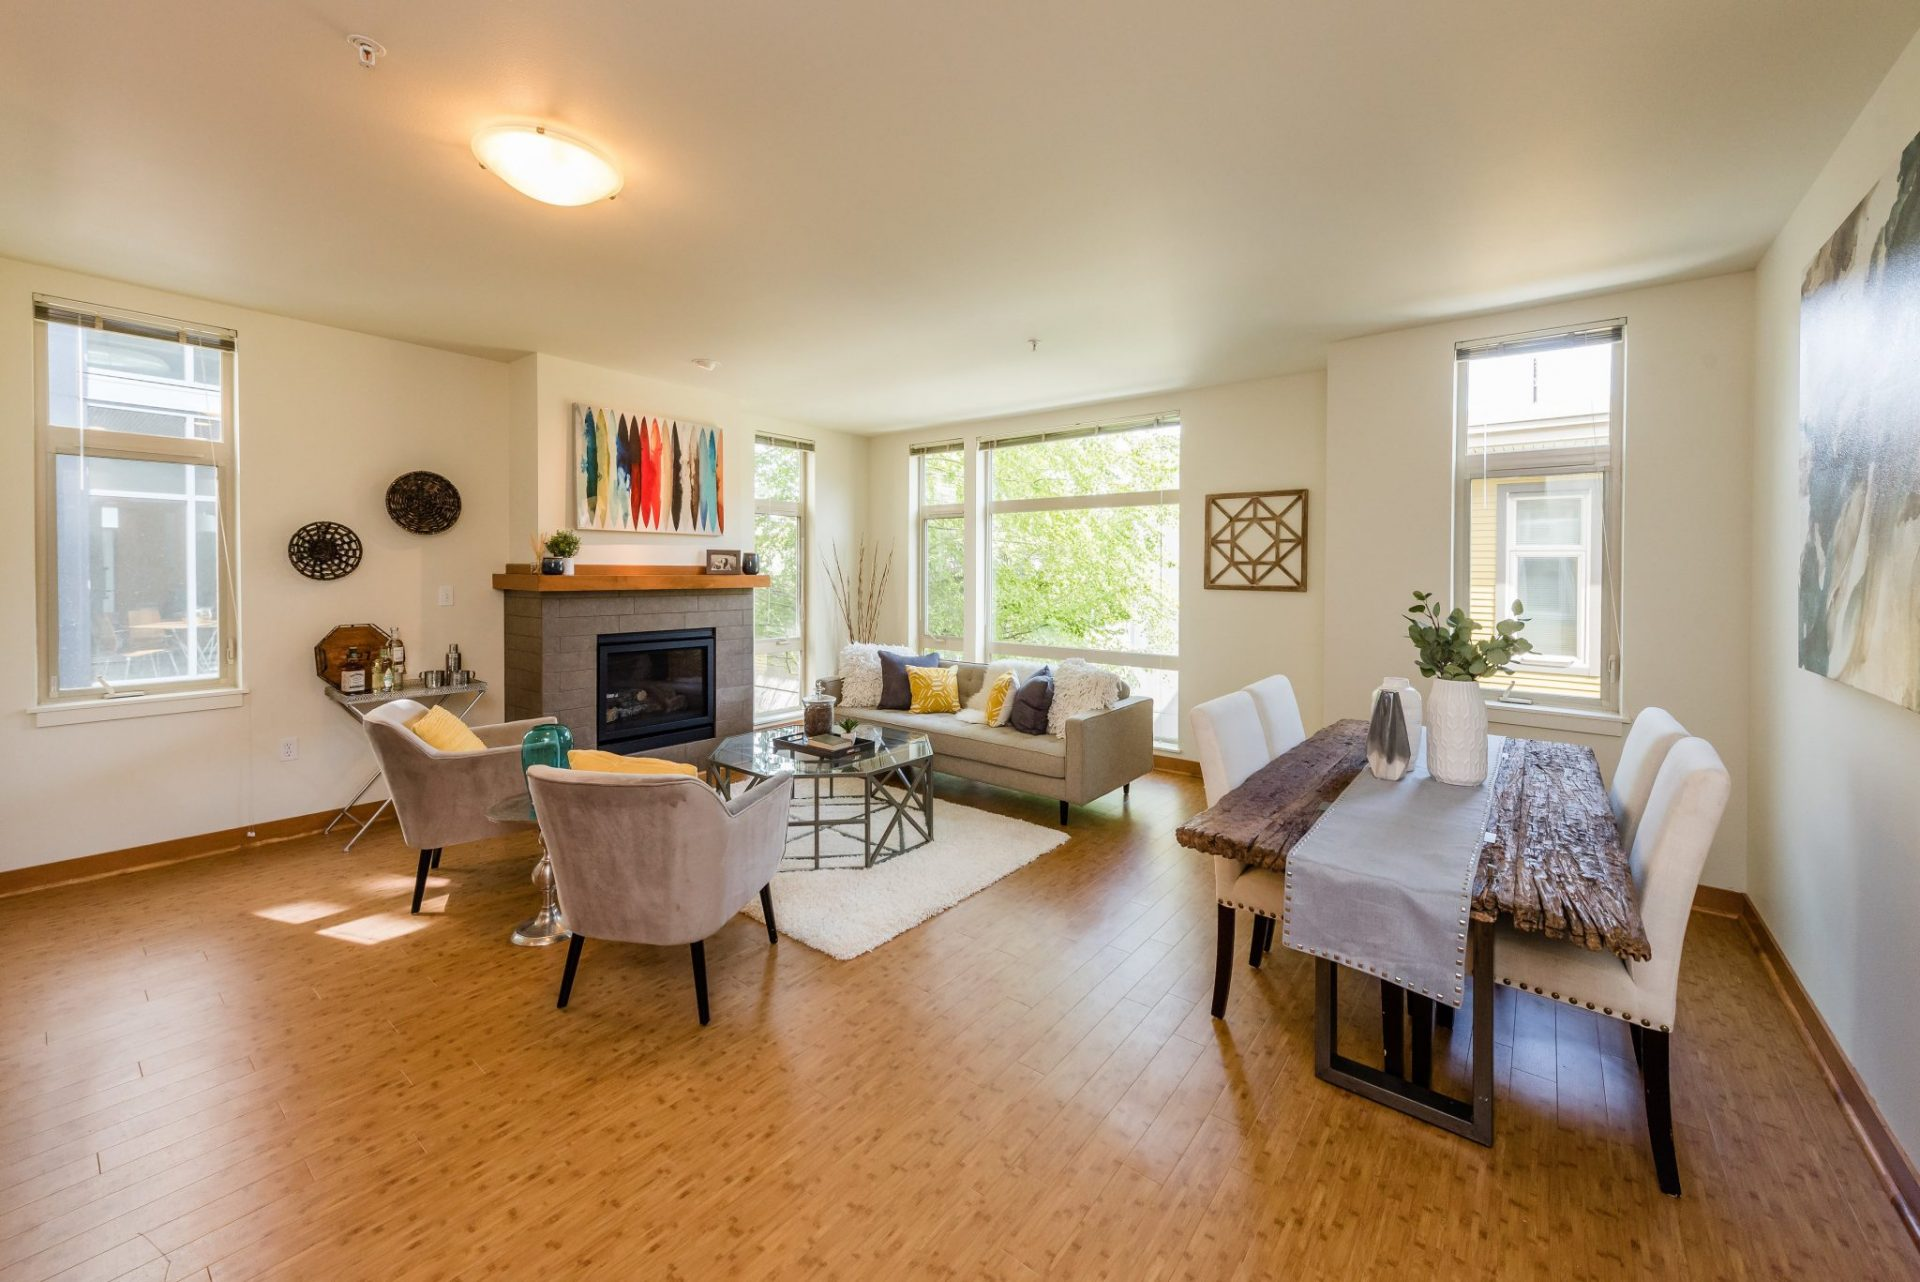 Spacious Apartment Homes At Thornton Place Apartments In Seattle, WA